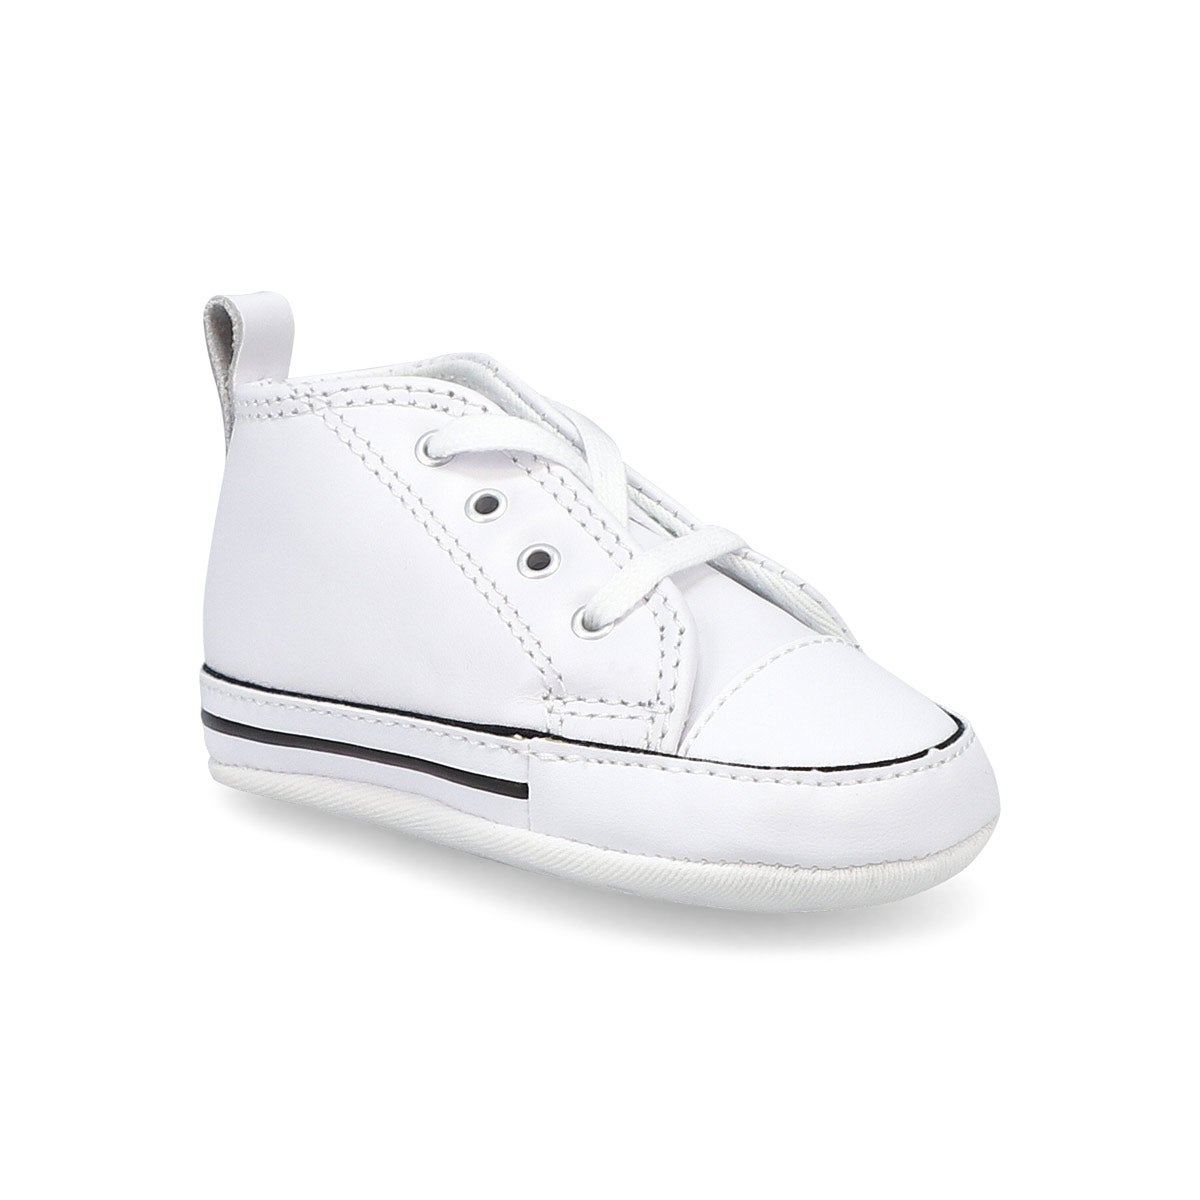 Inf CTAS Crib white leather sneaker